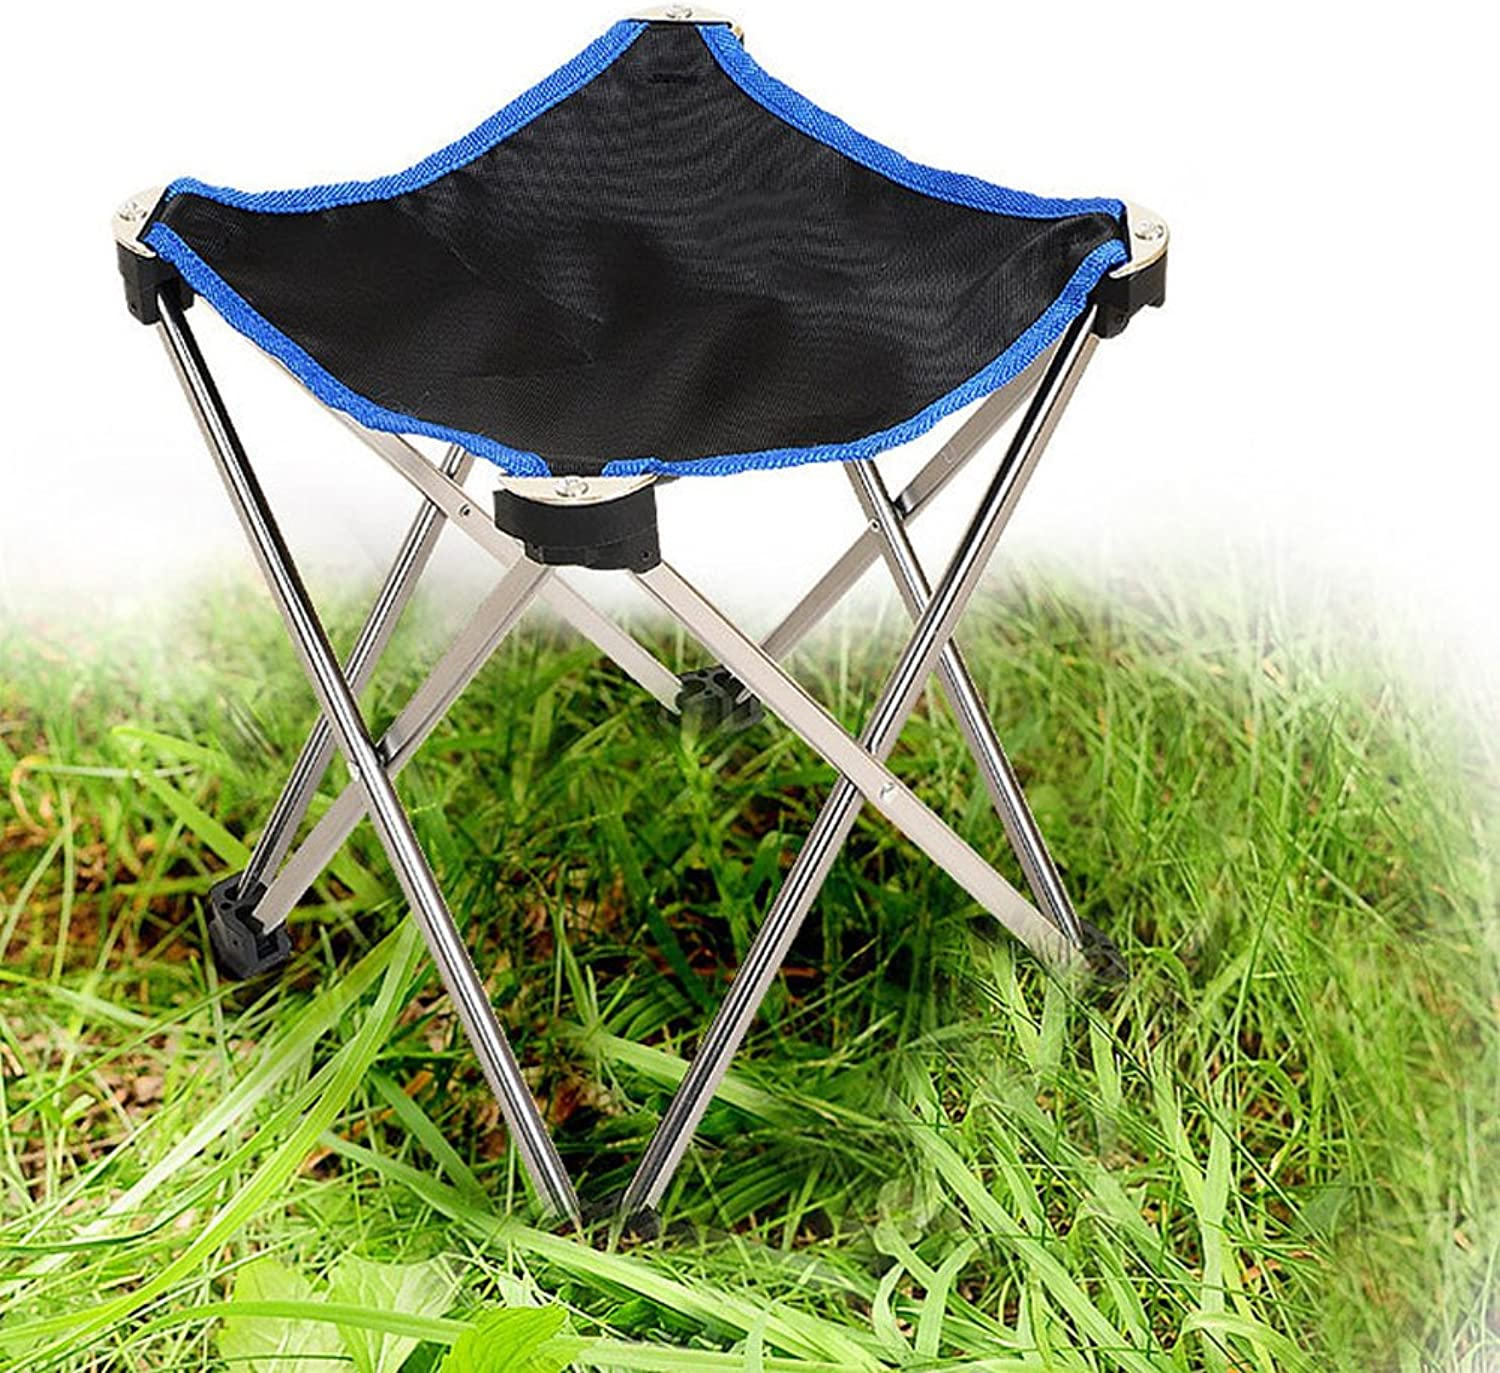 Outdoor Ultralight Compact Folding Stool Seat Camping Hiking Fishing BBQ Chair